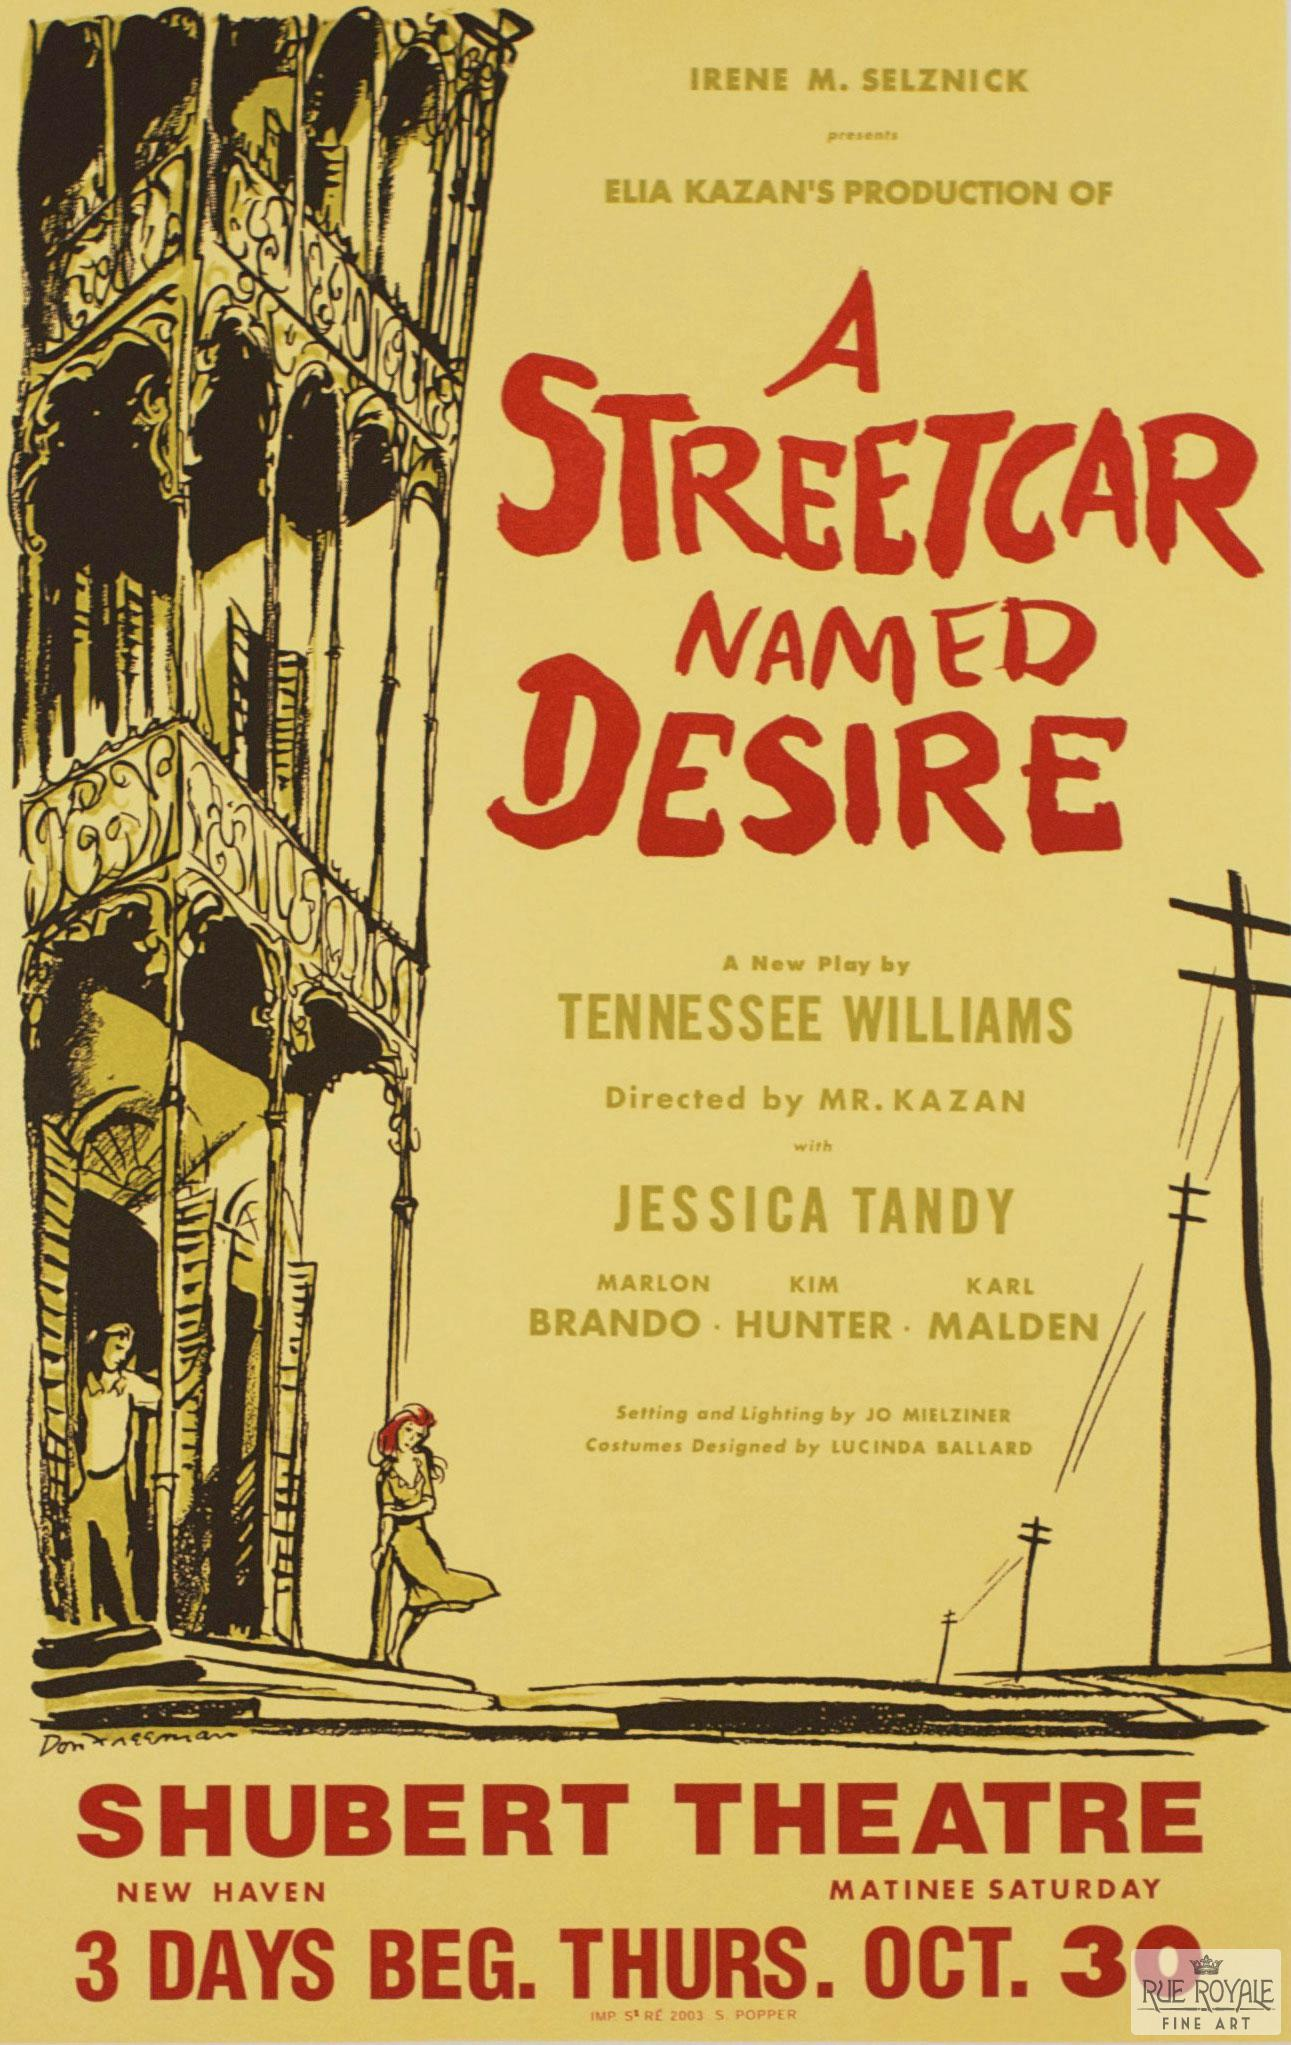 Tennessee Williams, Streetcar named desire, Marlon Brando, Jessica Tandy